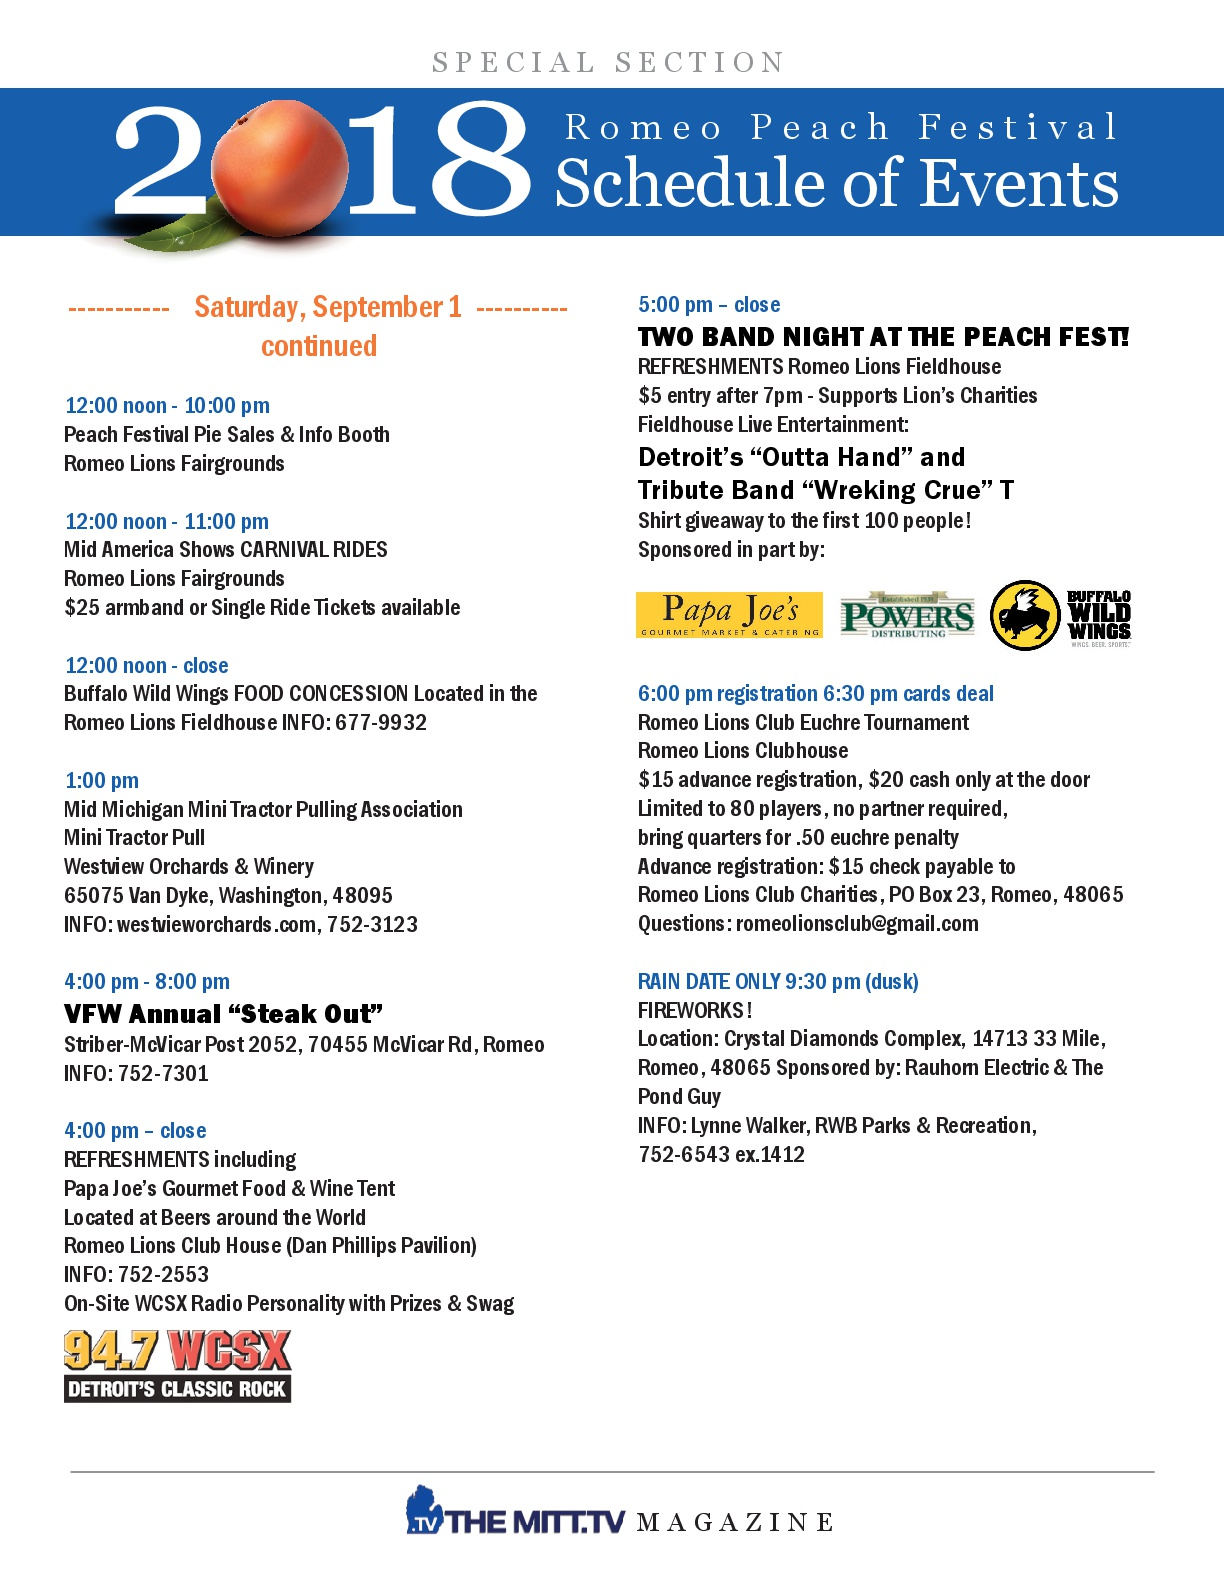 Schedule-of-Events-Pages.final-004.jpg